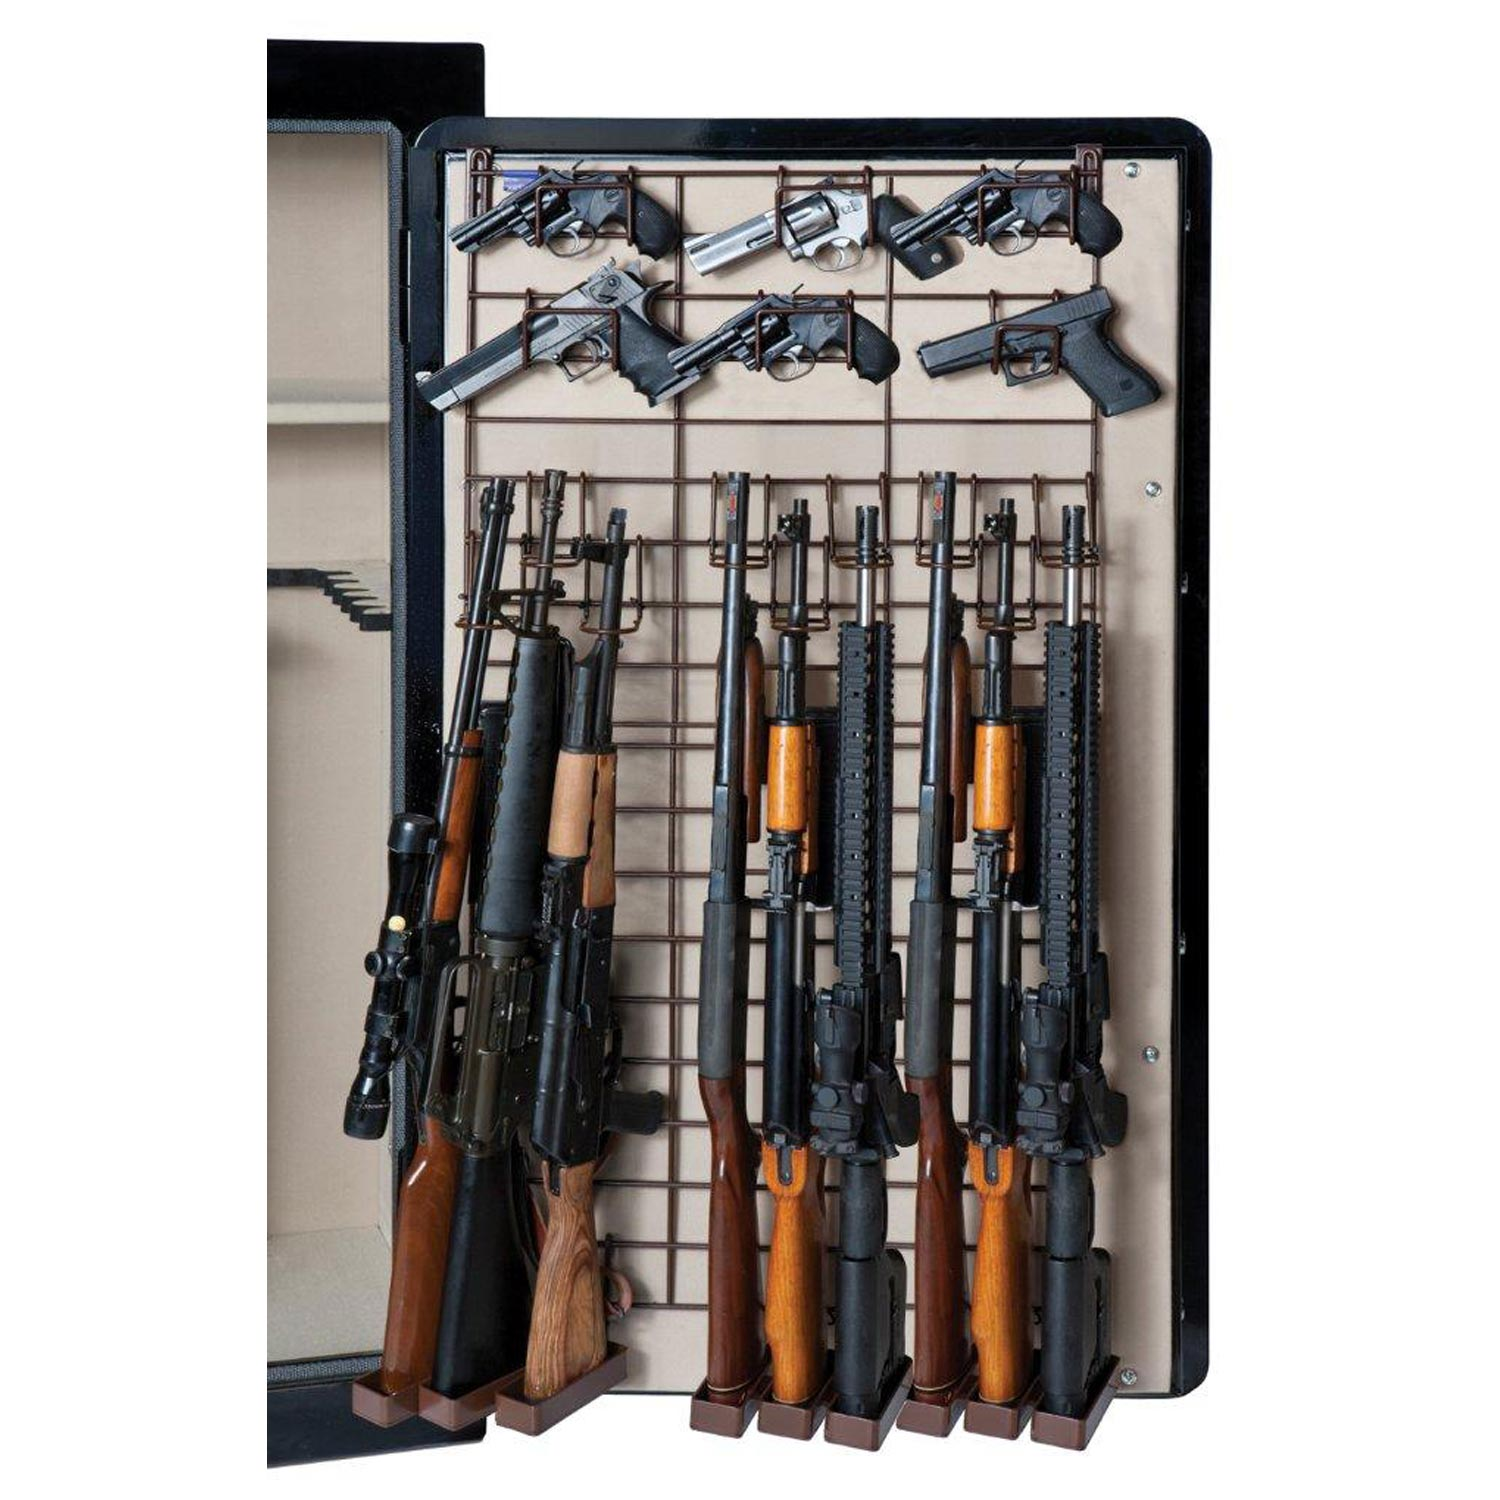 The Maximizer Full Door Gun Safe Organizer - 9 Rifles, 18 Pistols - RCKM-6047